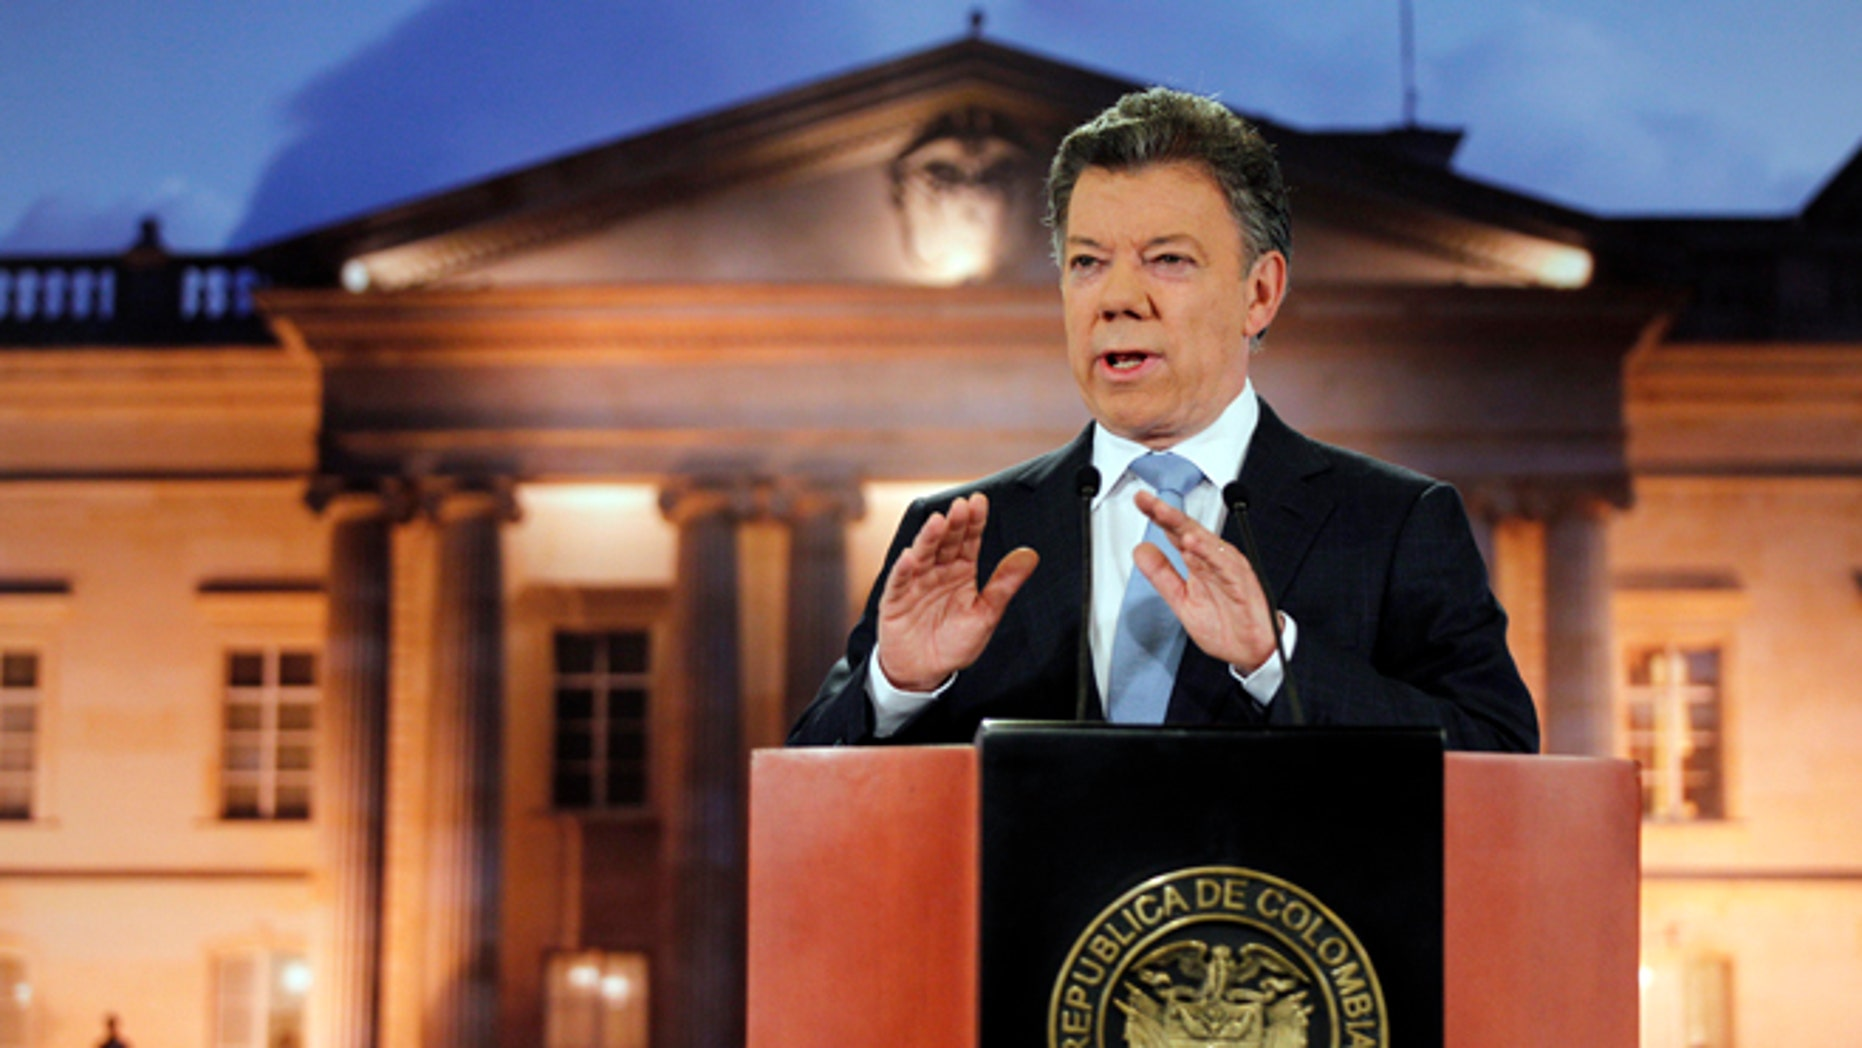 Colombia's President Juan Manuel Santos delivers a speech during a televised address to the nation at the presidential palace in Bogota, Colombia, Monday, Aug. 27, 2012. (AP Photo/Fernando Vergara)